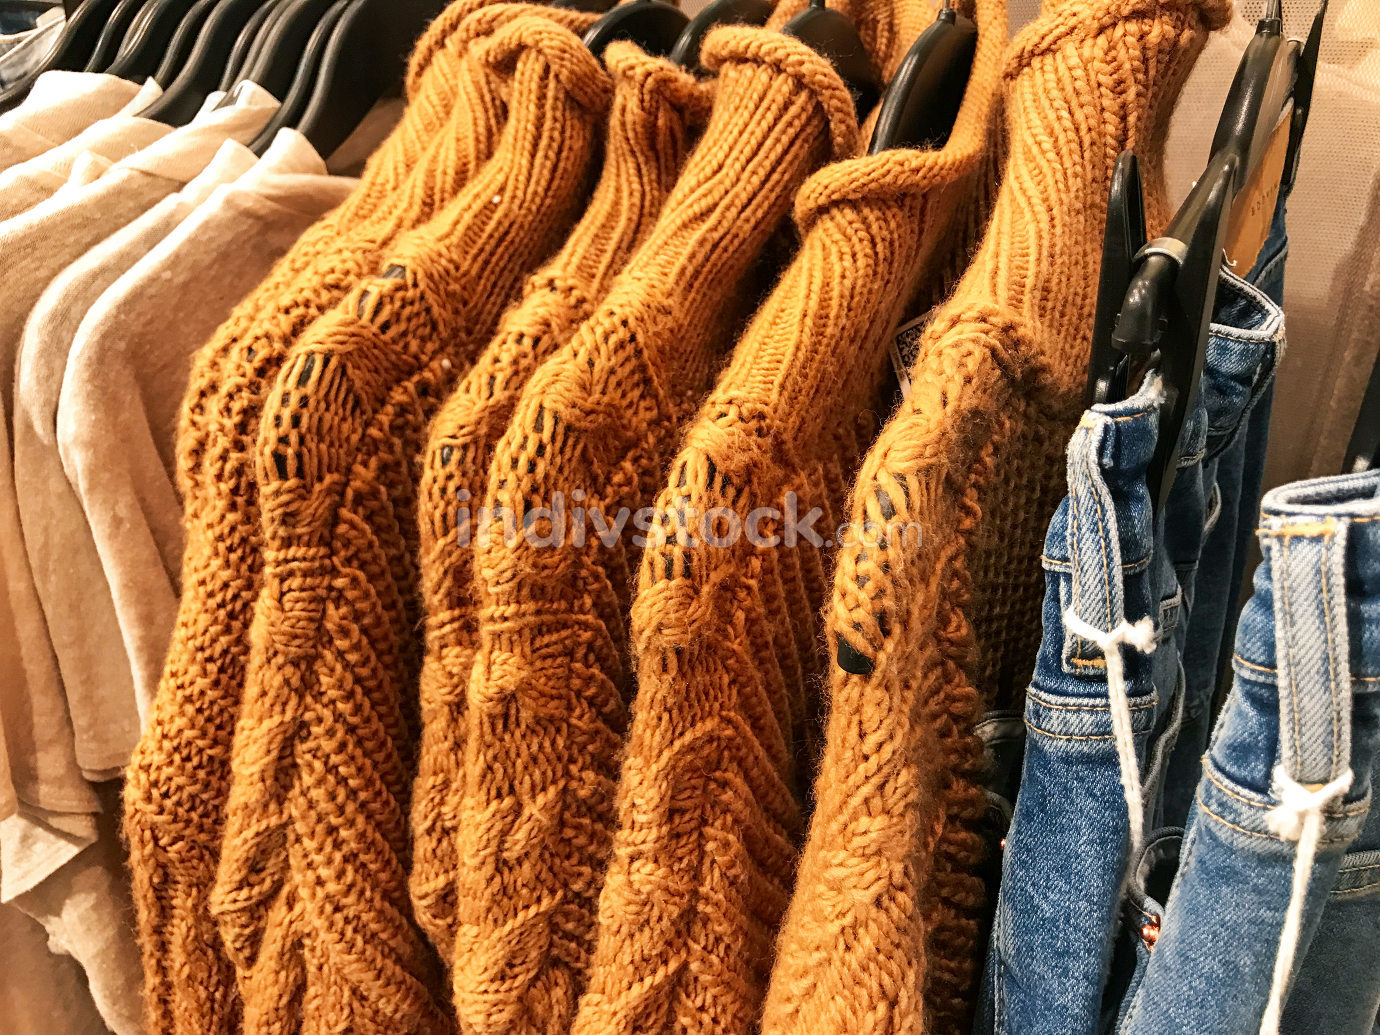 Different types of winter sweaters for sale at a nearby store